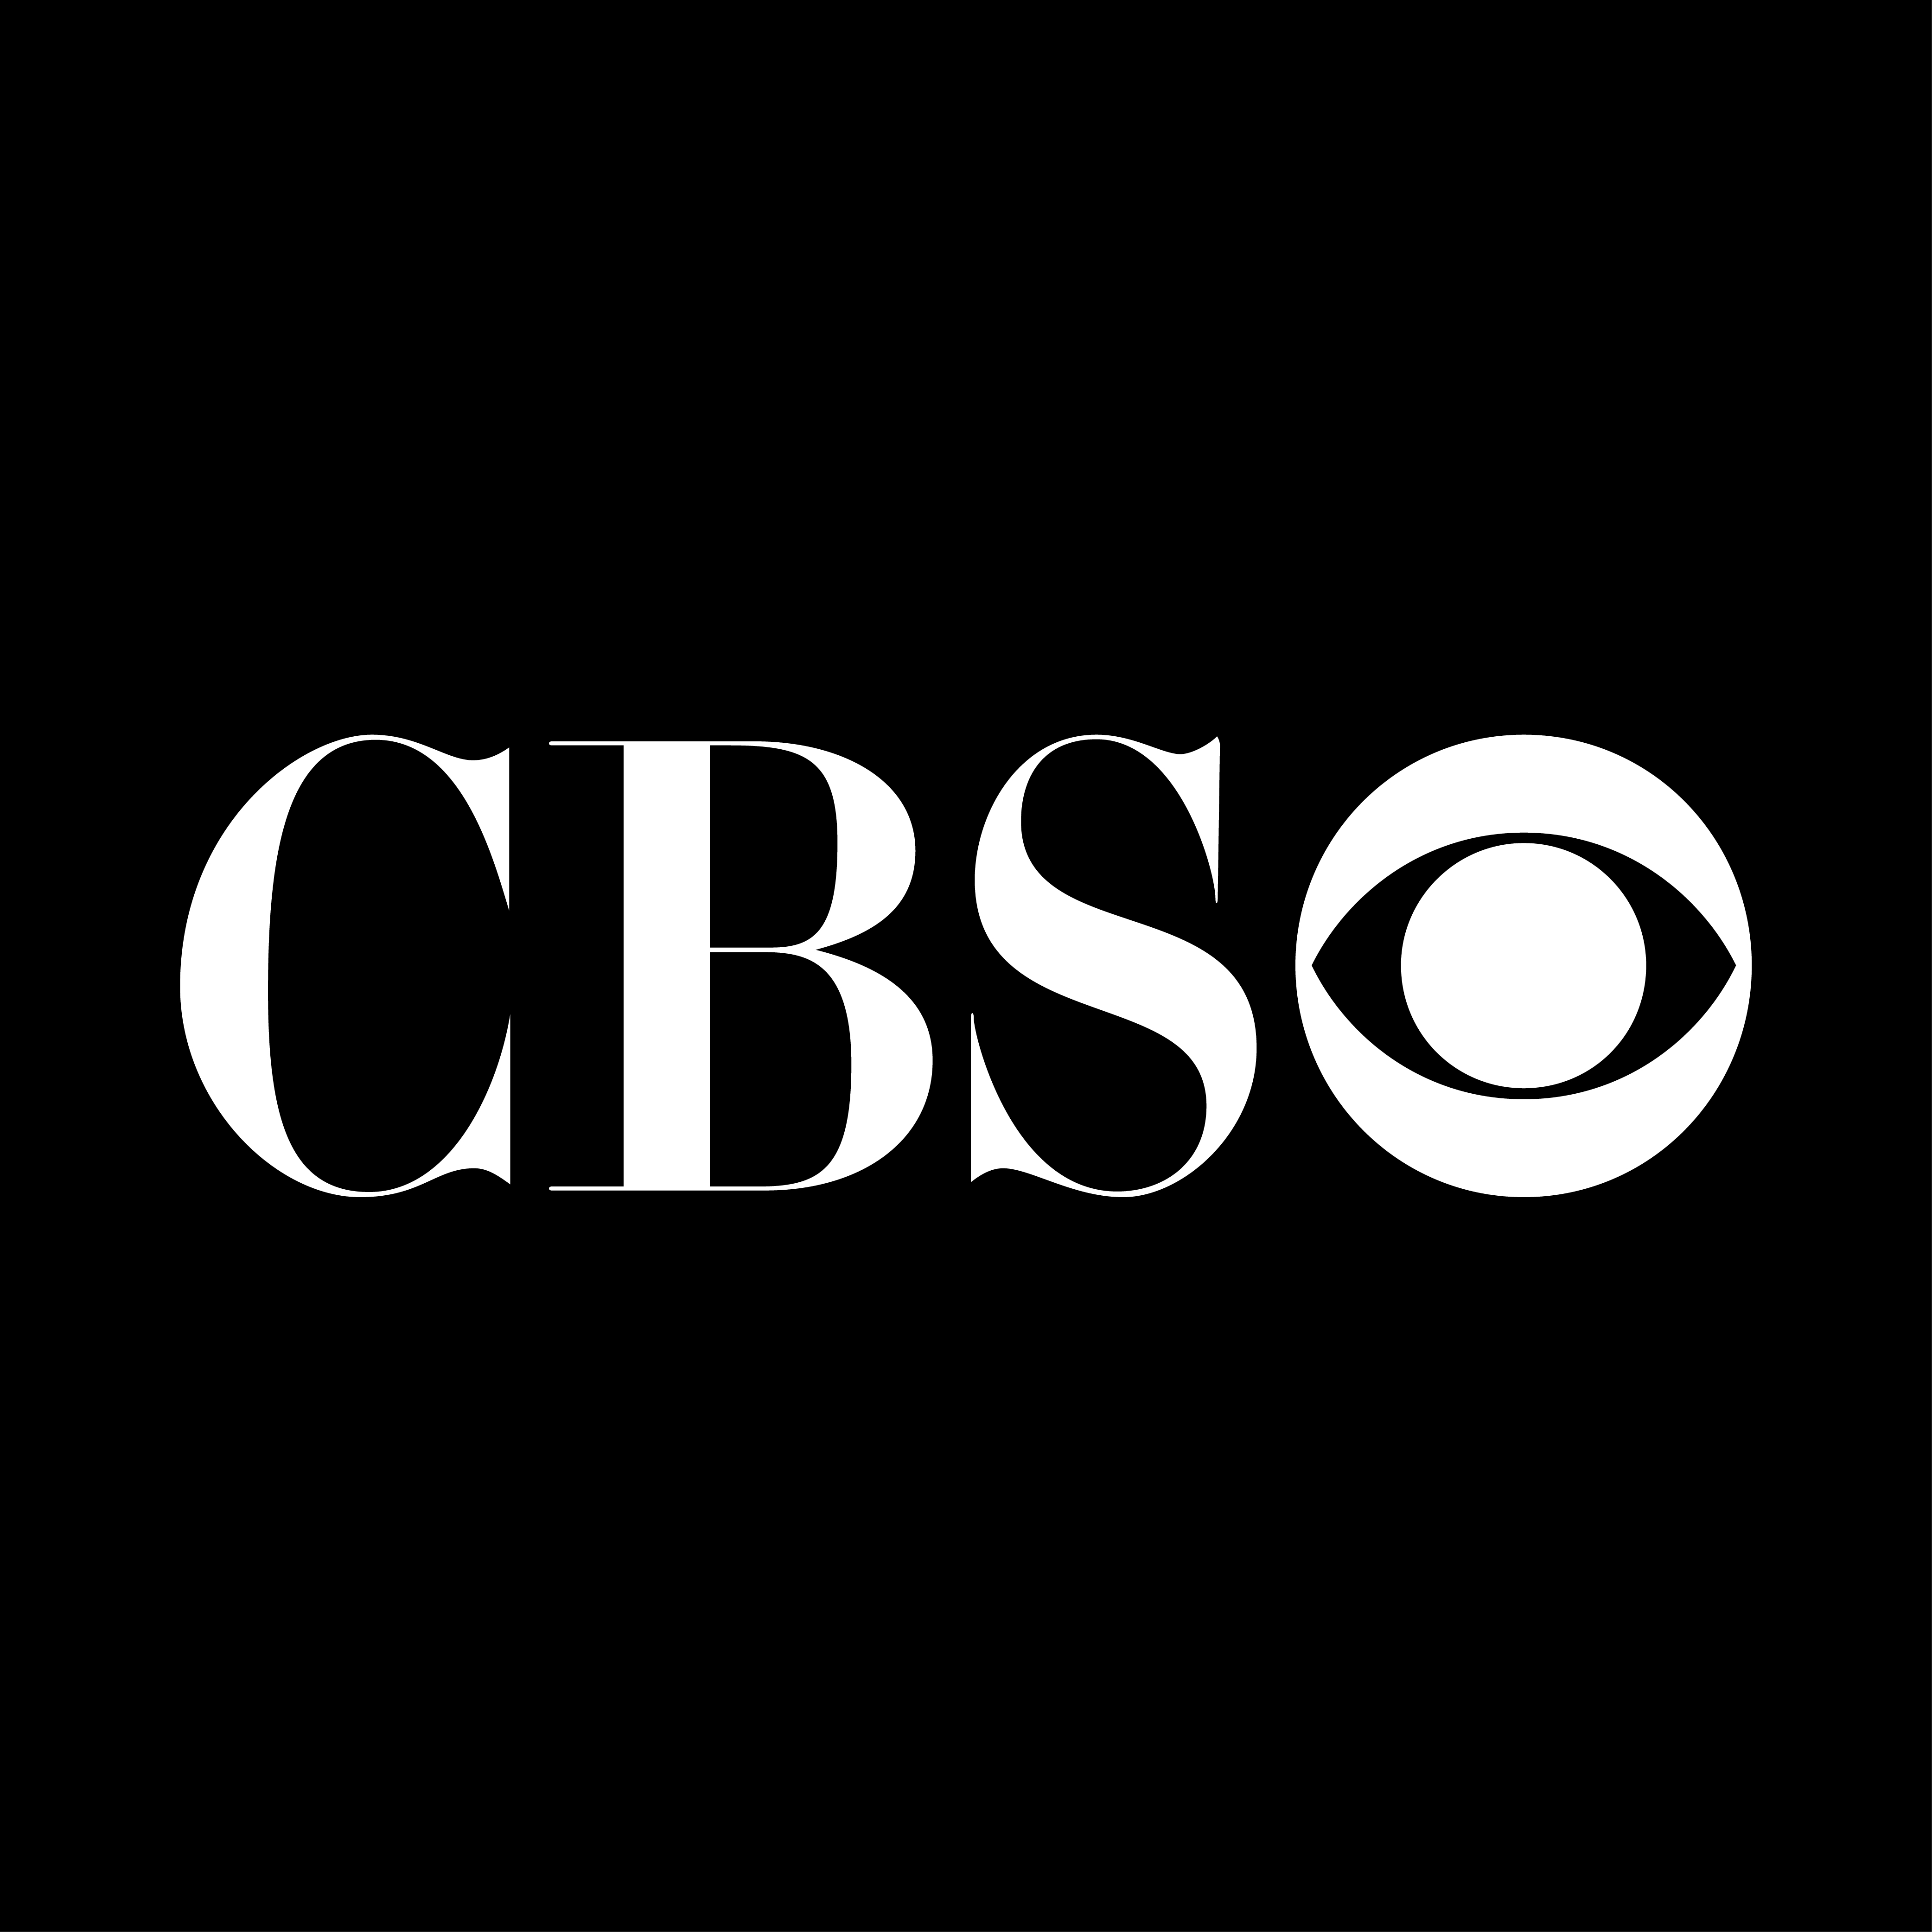 CBS Identity, 1960s - Fonts In...